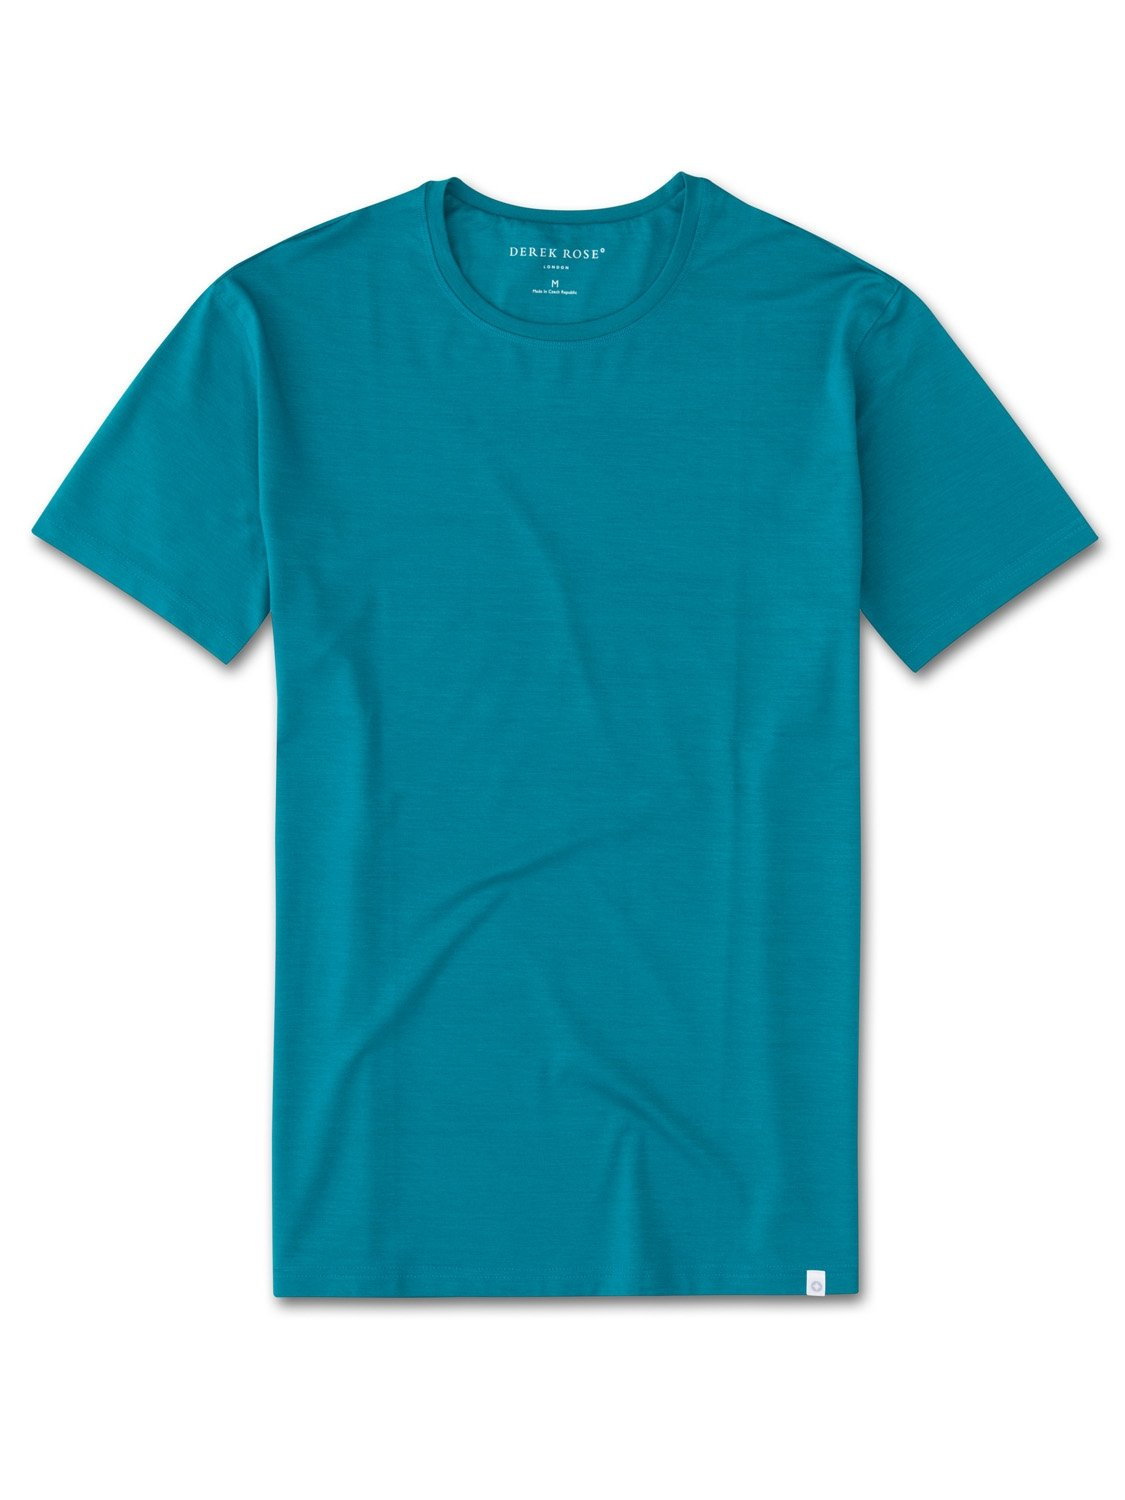 Men's Short Sleeve T-Shirt Basel 4 Micro Modal Stretch Teal